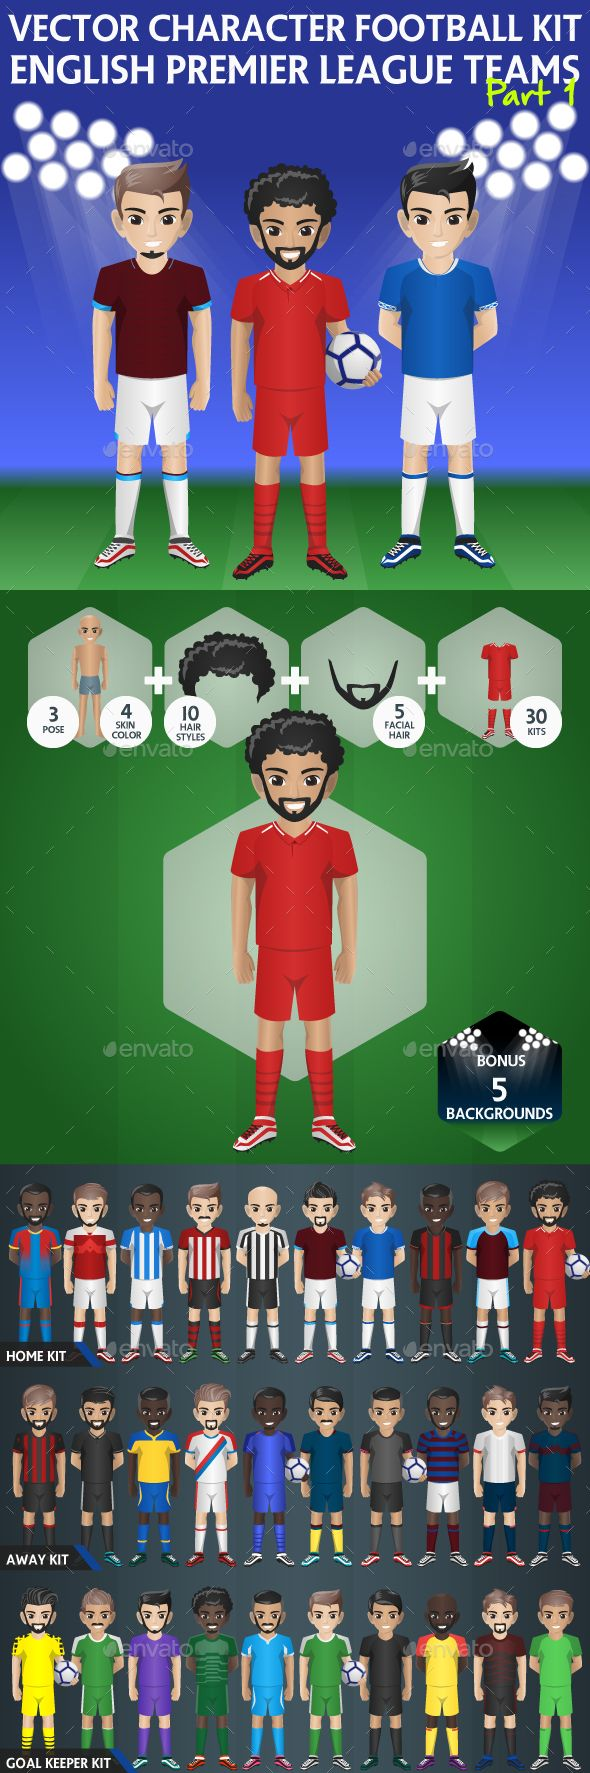 Soccer Team Kit With Customize Character Characters Vectors Premier League Teams Character English Premier League